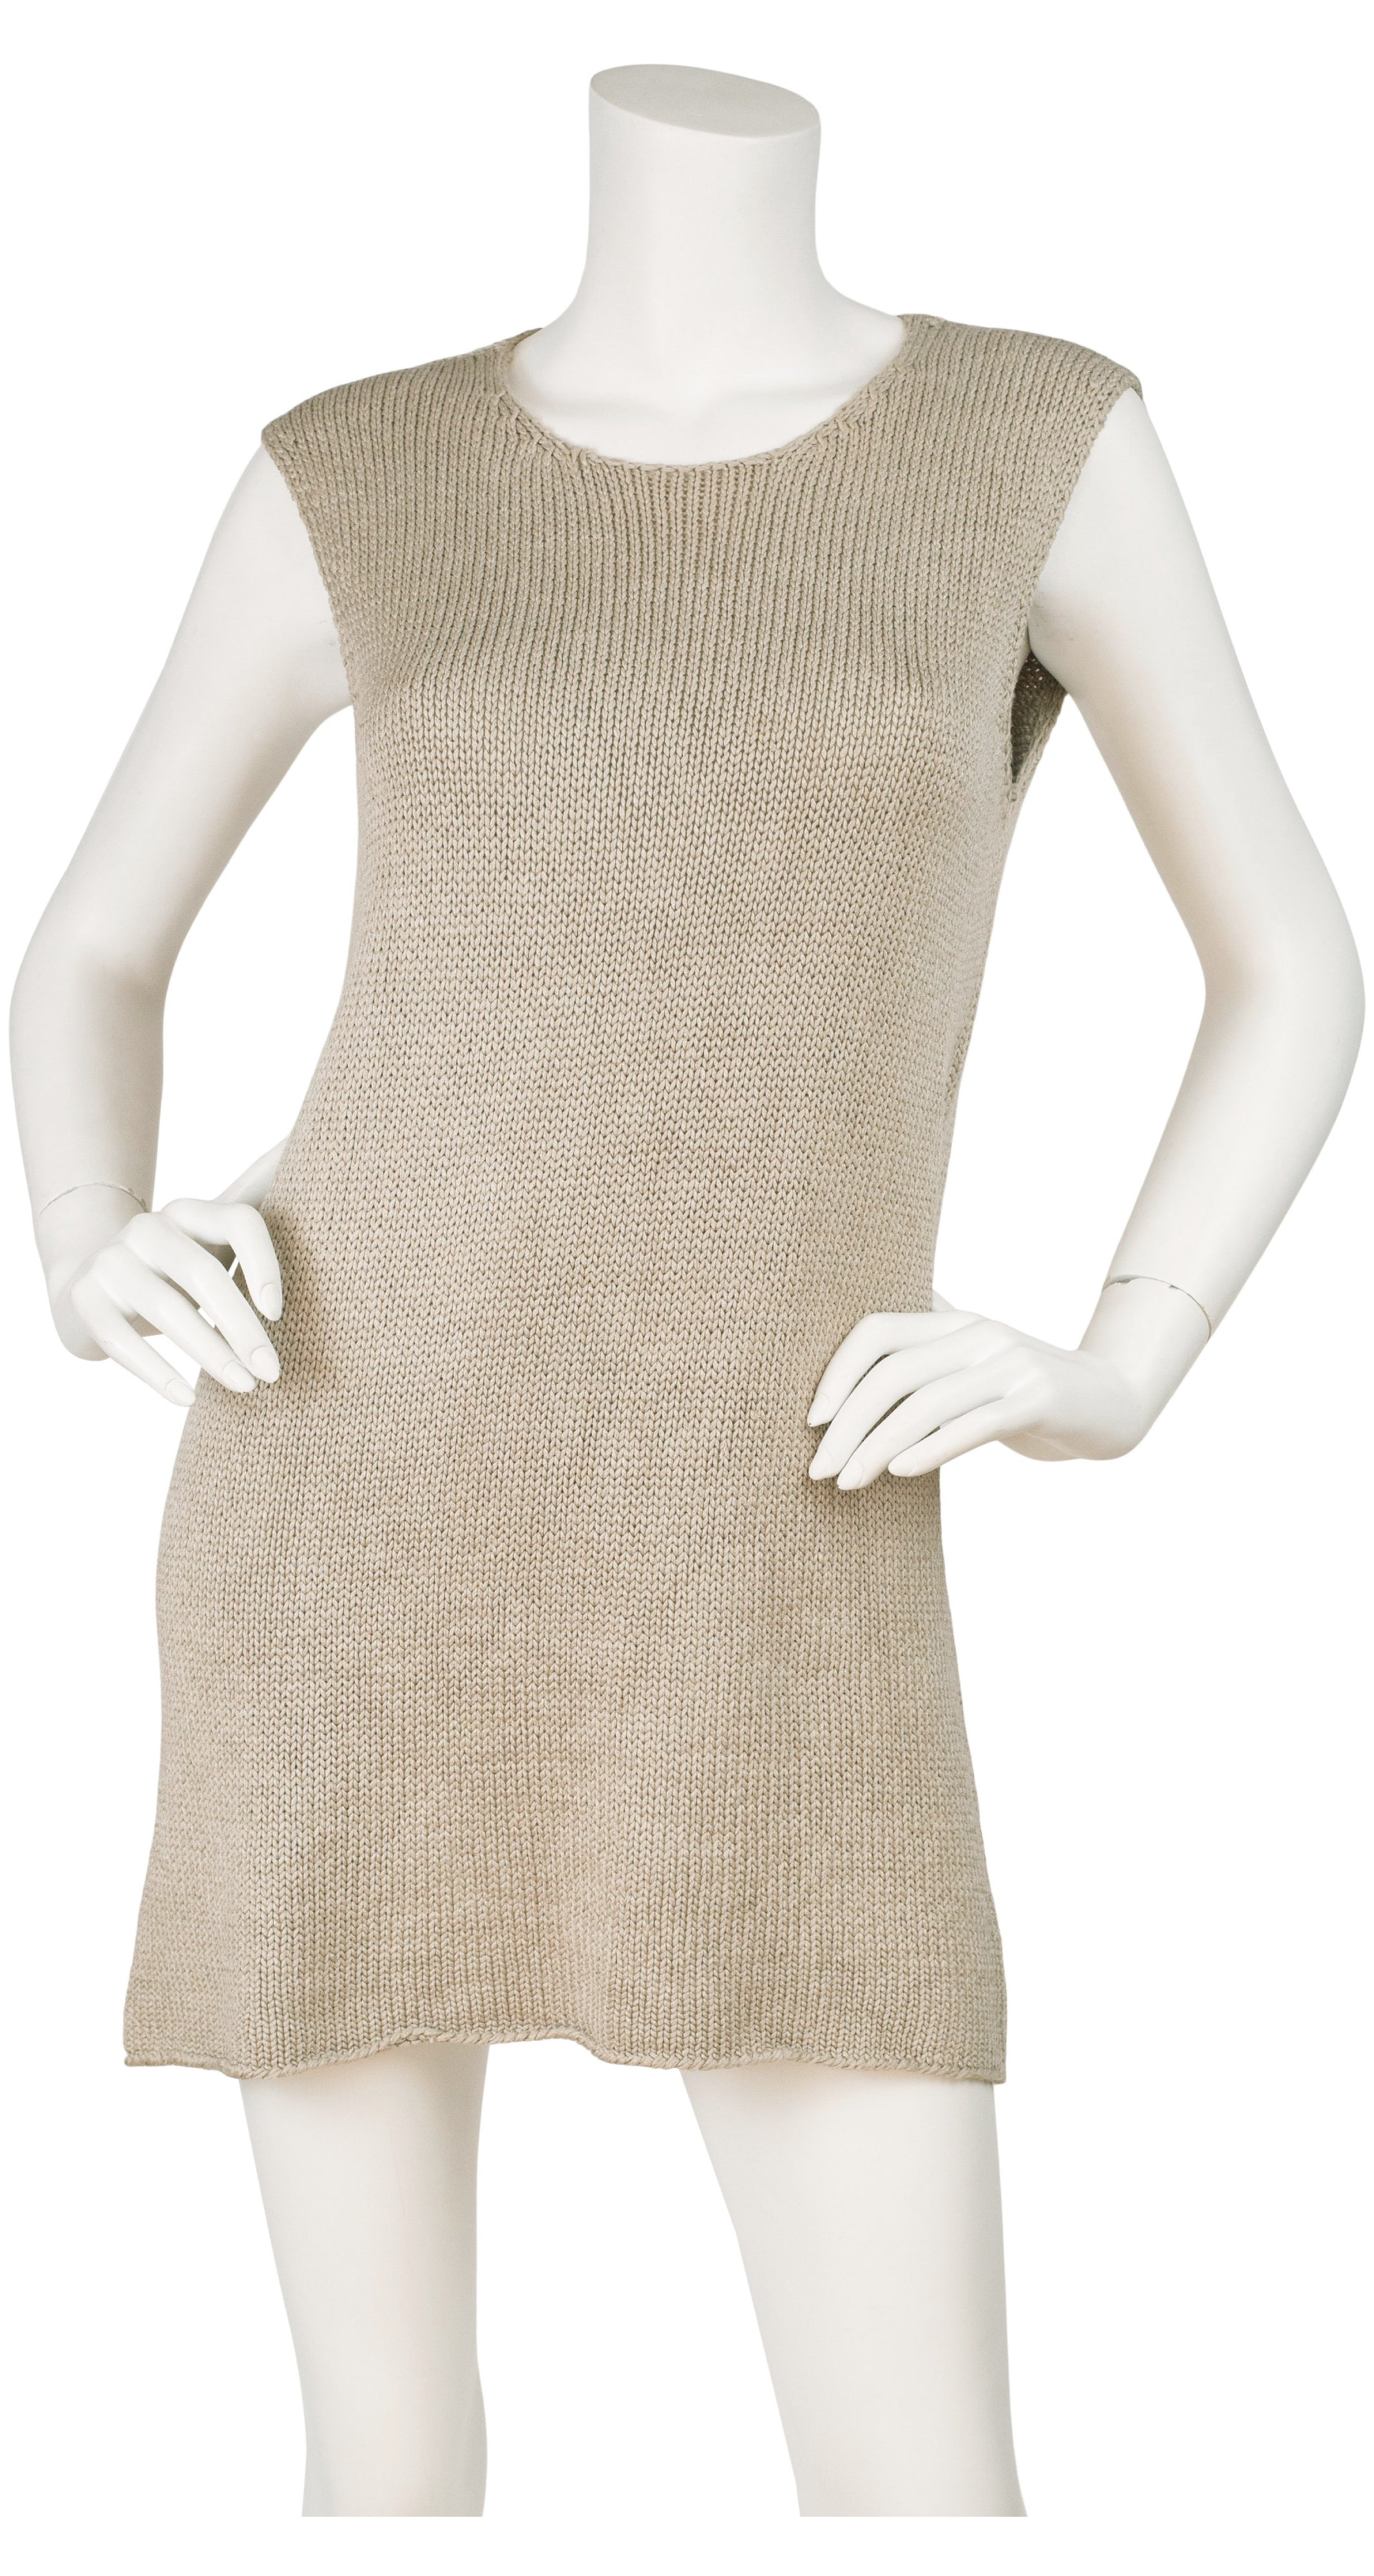 1999 S/S Taupe Silk Knit Sleeveless Top